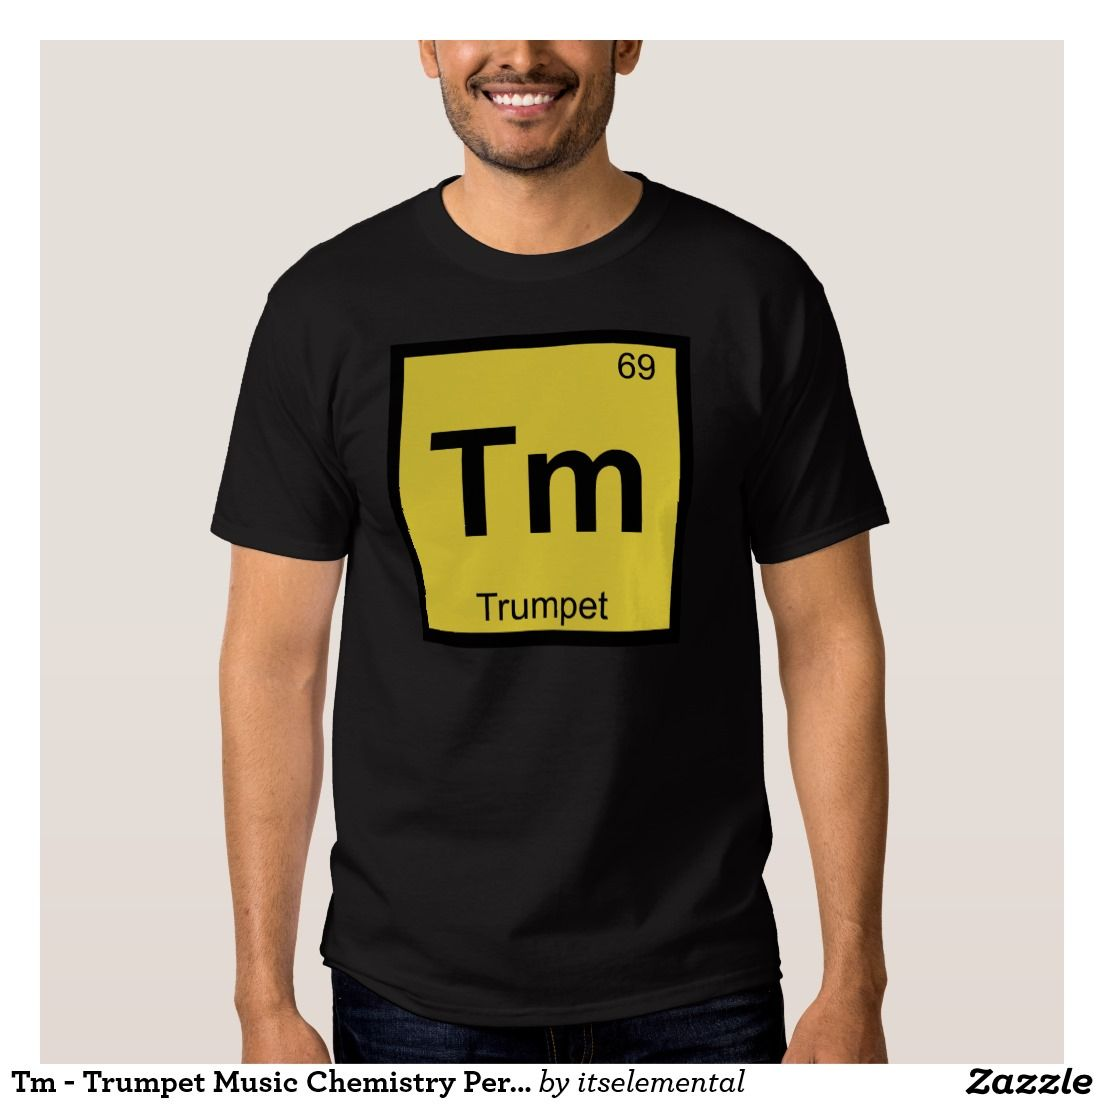 Tm trumpet music chemistry periodic table symbol t shirt shop tm trumpet music chemistry periodic table symbol t shirt created by itselemental urtaz Images